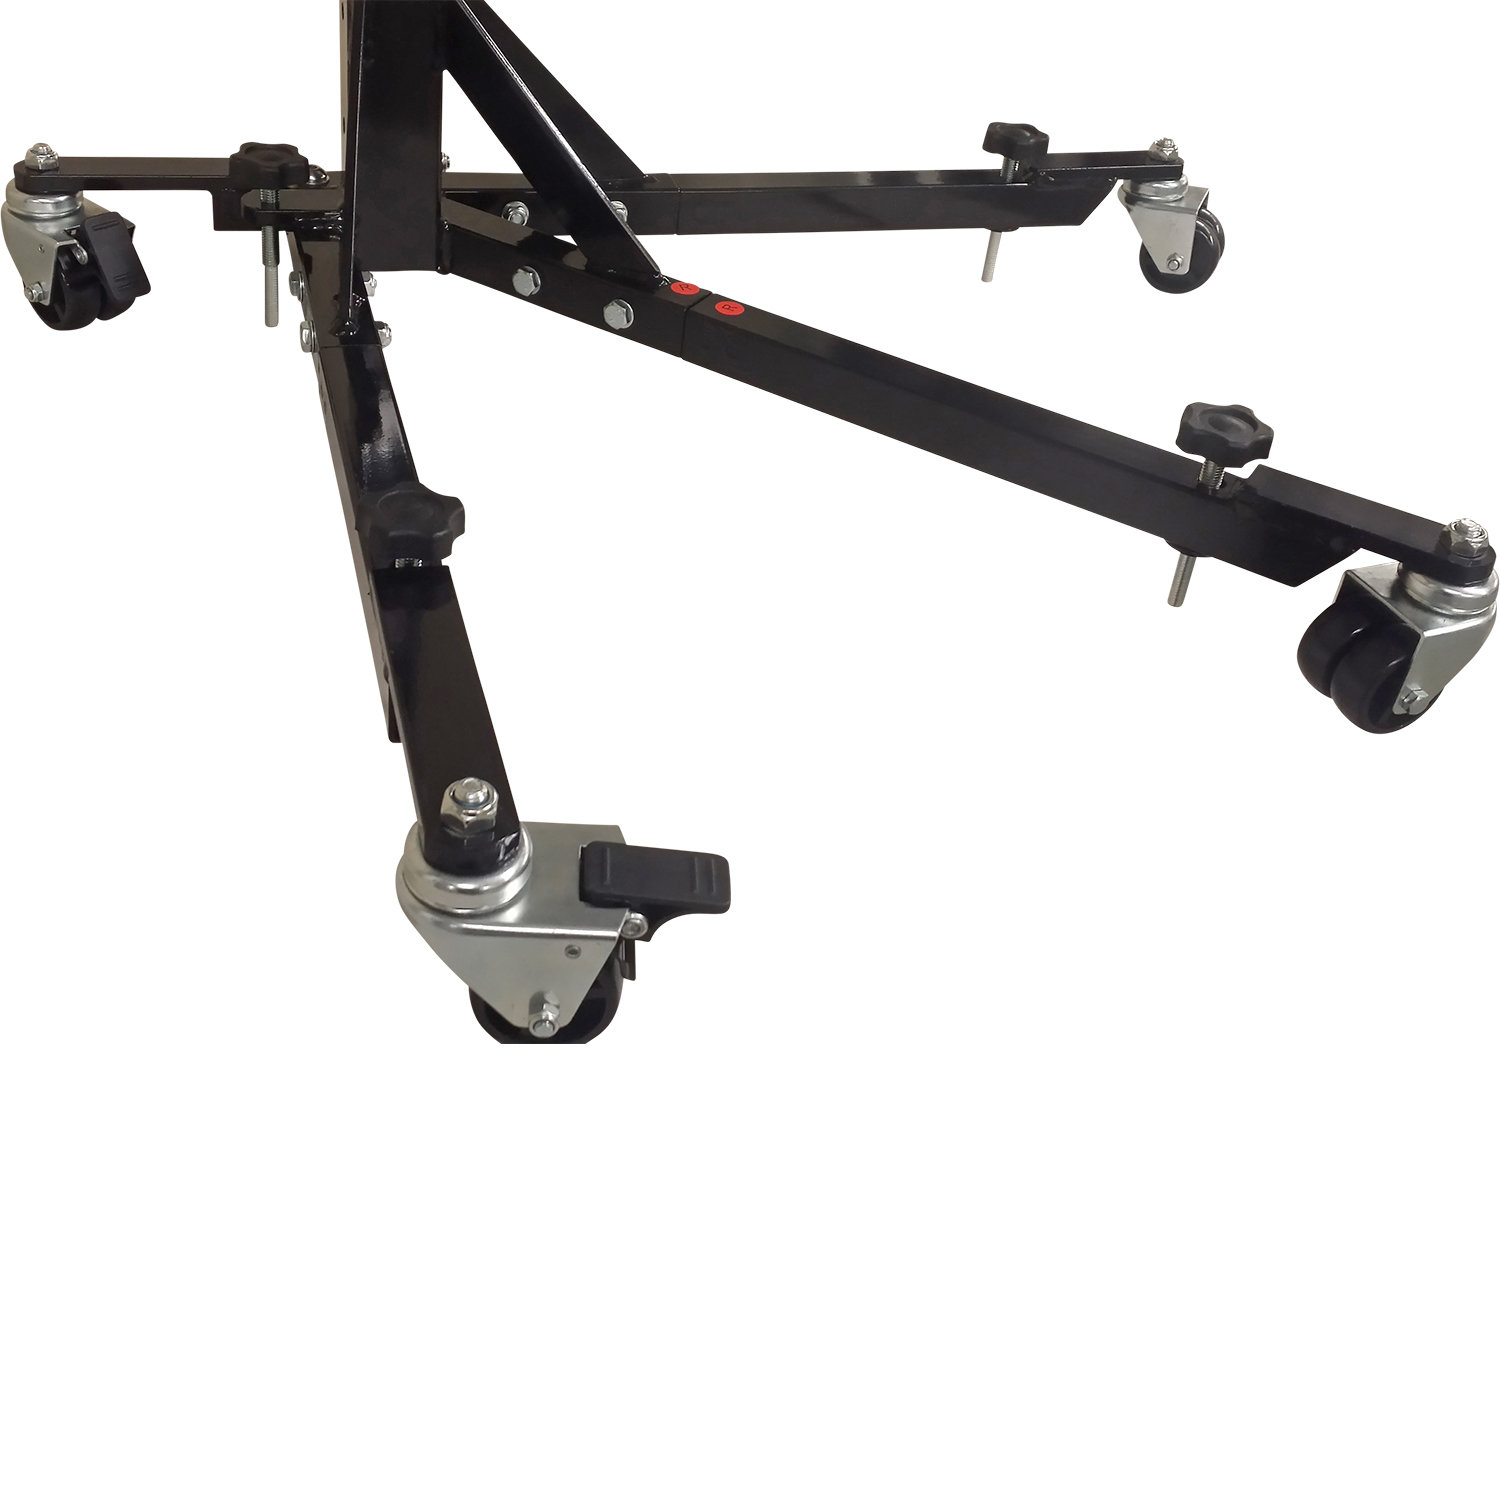 Black Custom Paddock Style Side Lift Stands for Ducati 1199 Panigale Models